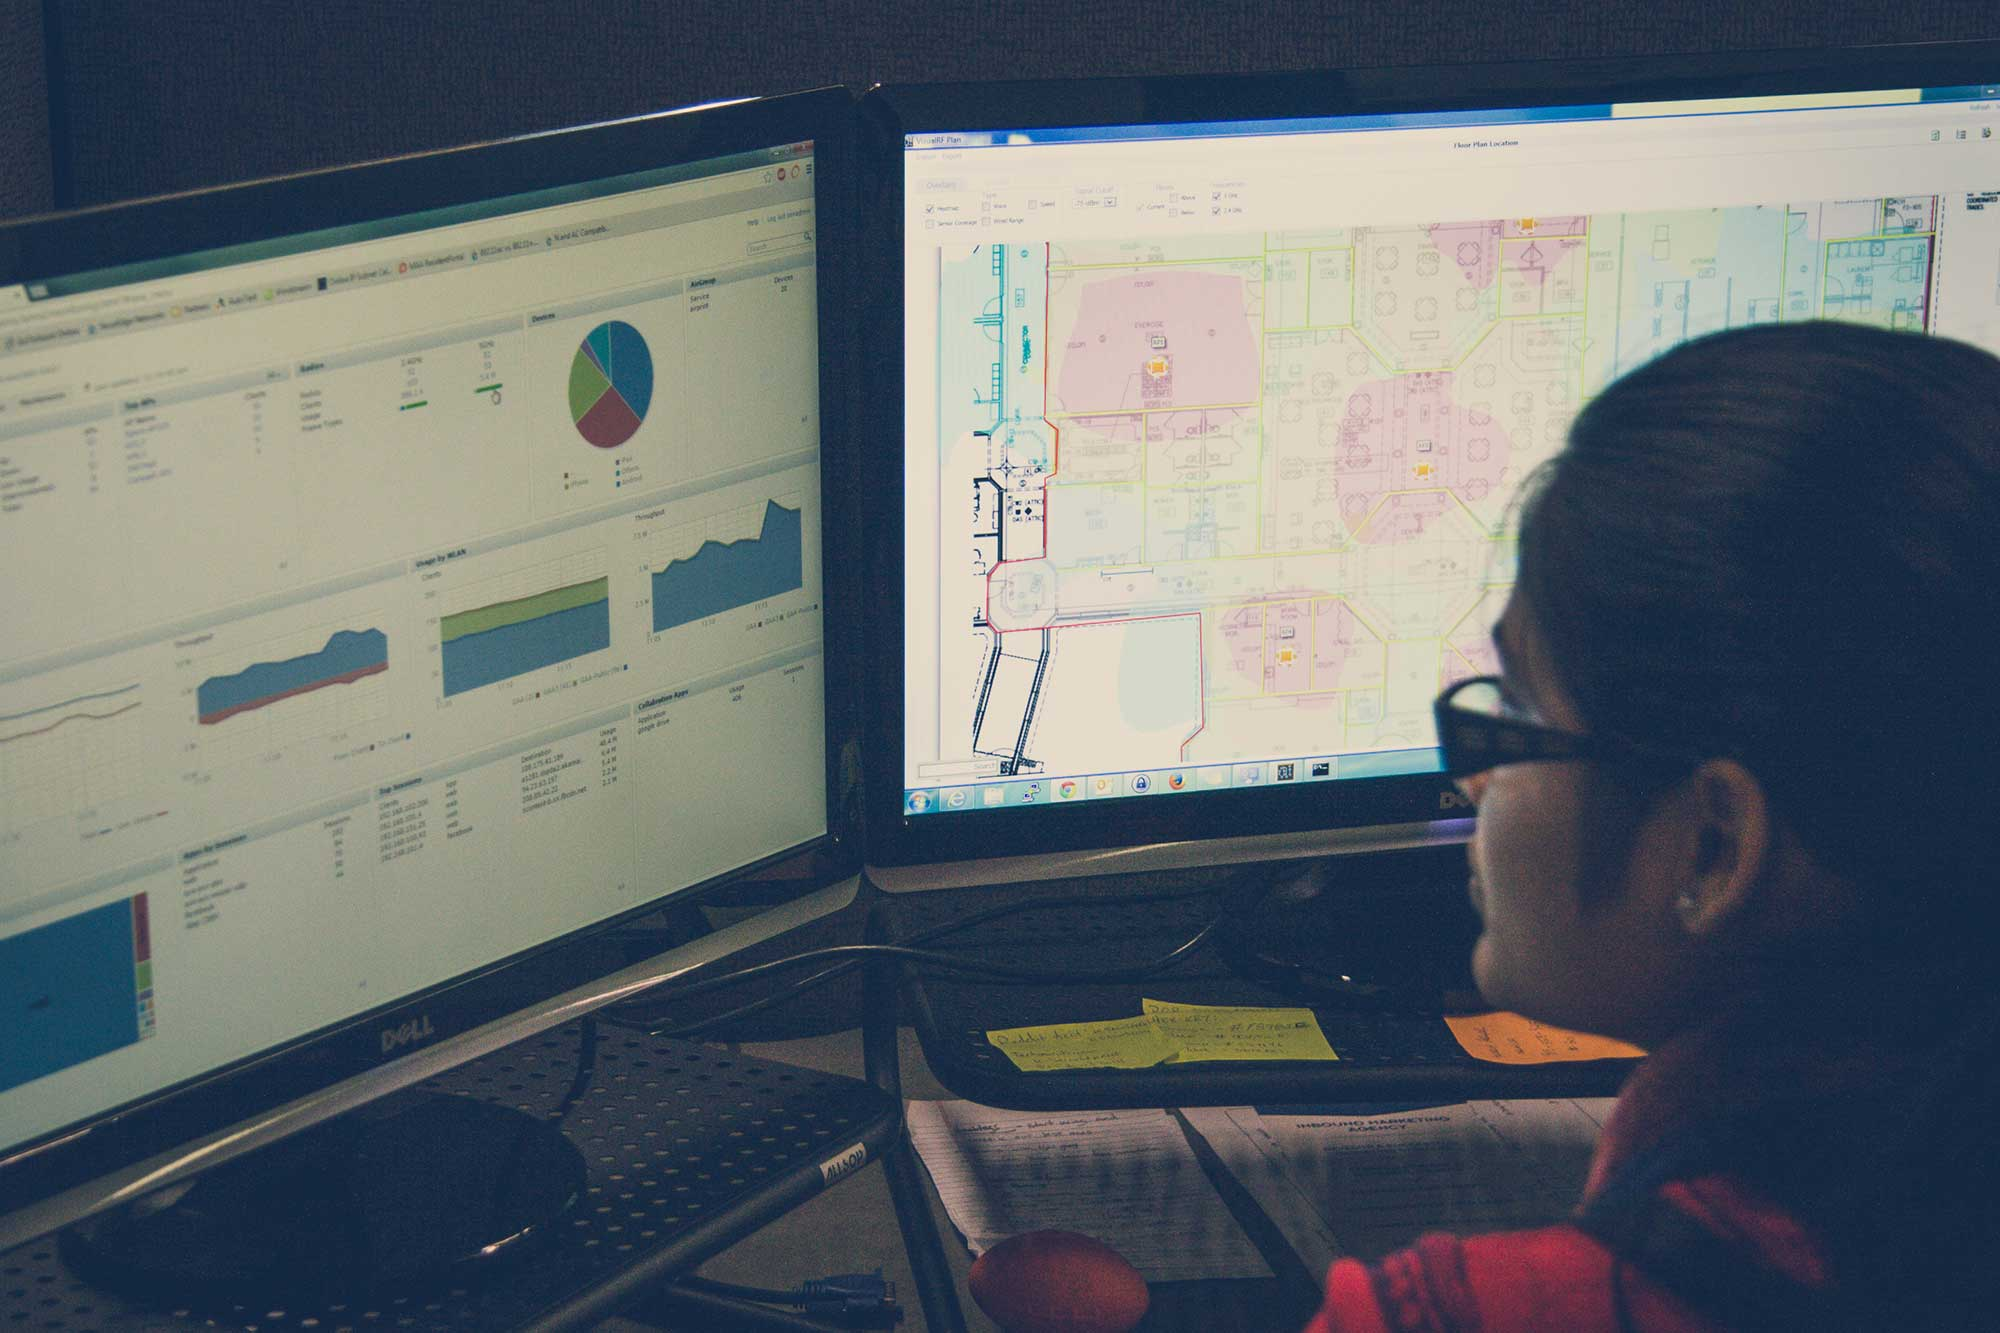 Wireless Network Design: 3 Simple Tips for Building a Successful Network in Education